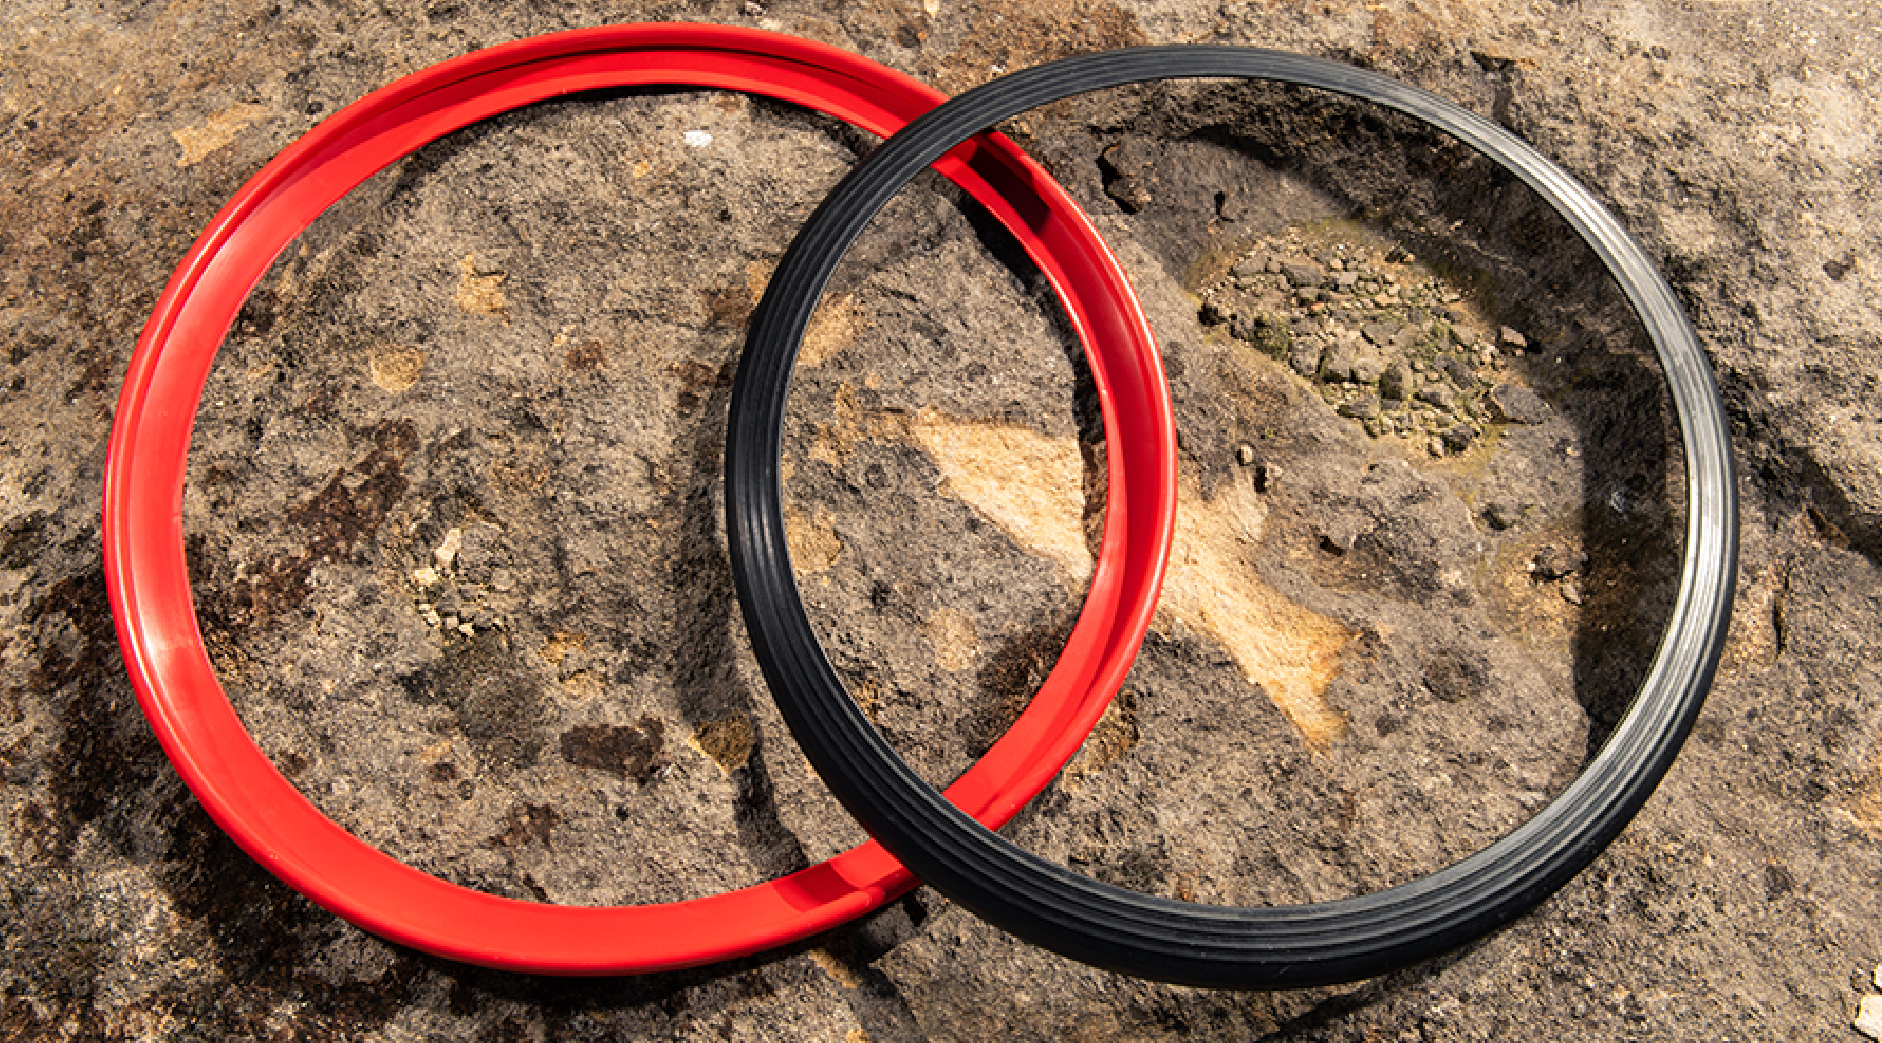 Overlapping black and red continuous rubber RIMFINITY product before fitting, on a natural stone background